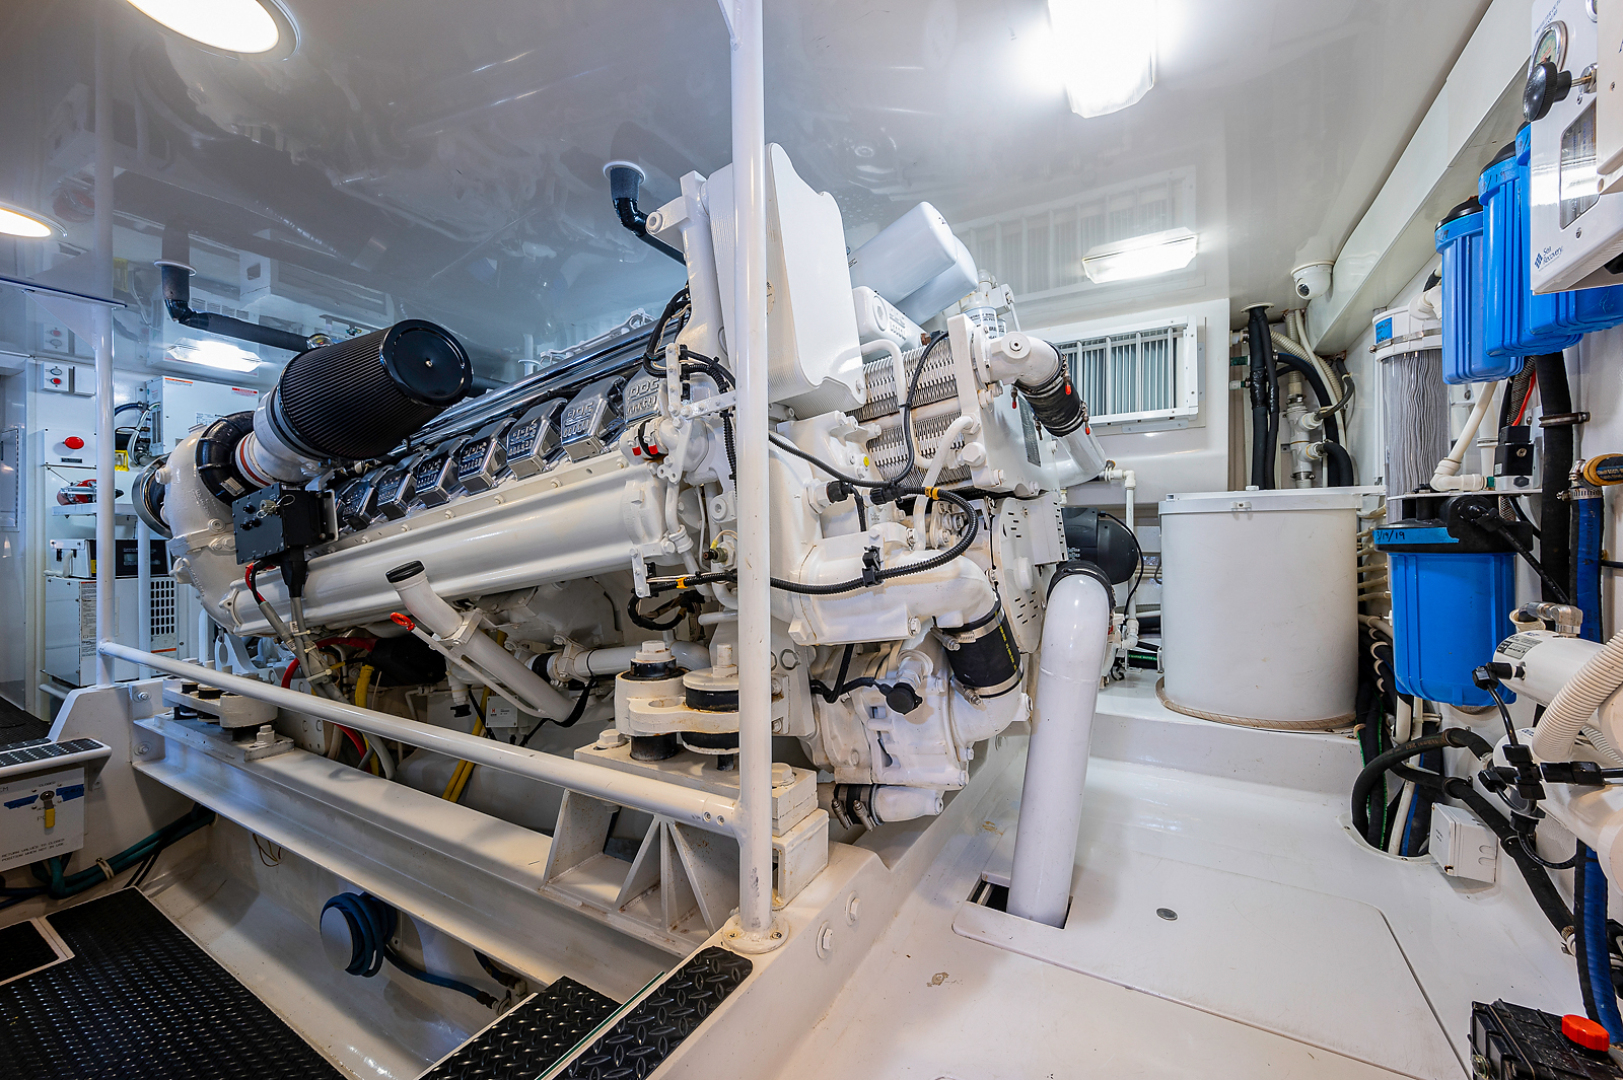 Viking-Convertible 2007-Scoped Out Lighthouse Point-Florida-United States-Engine Room-1552165 | Thumbnail